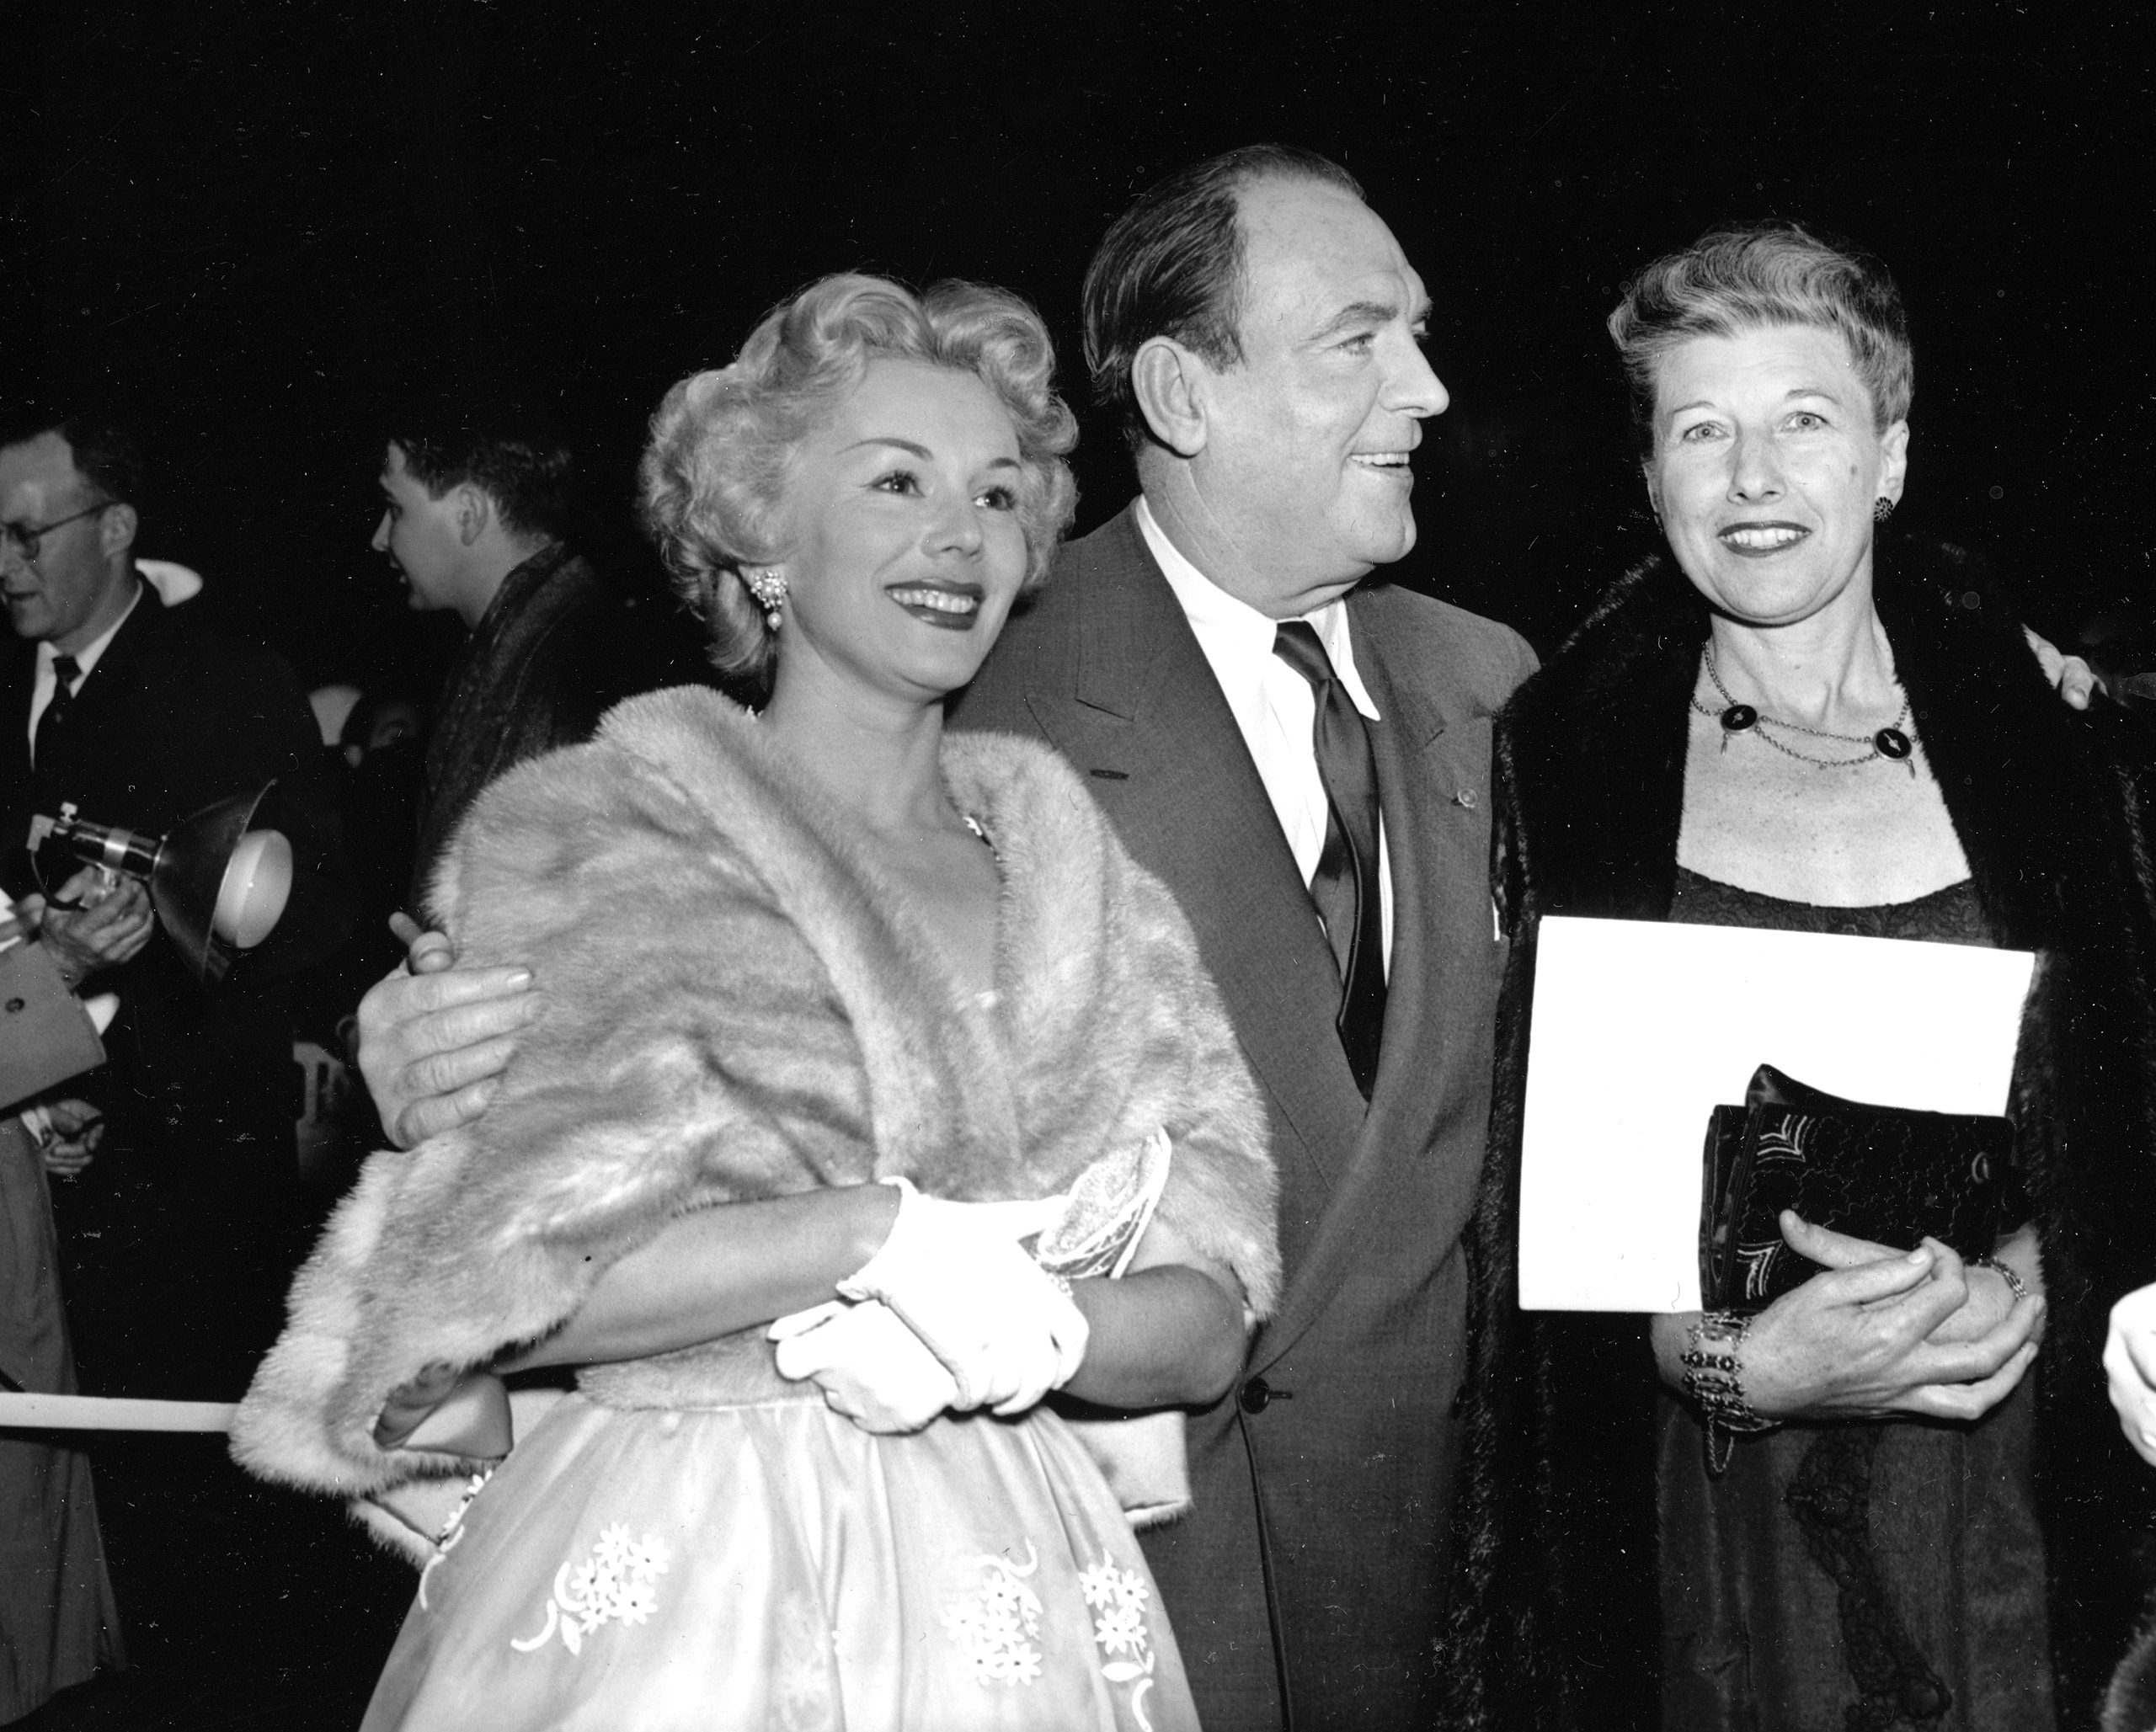 Eva Gabor, Pat O'Brien and Evelyn Karloff attend the eastern part of the telecast of the Academy Awards presentations in New York City, 1953.